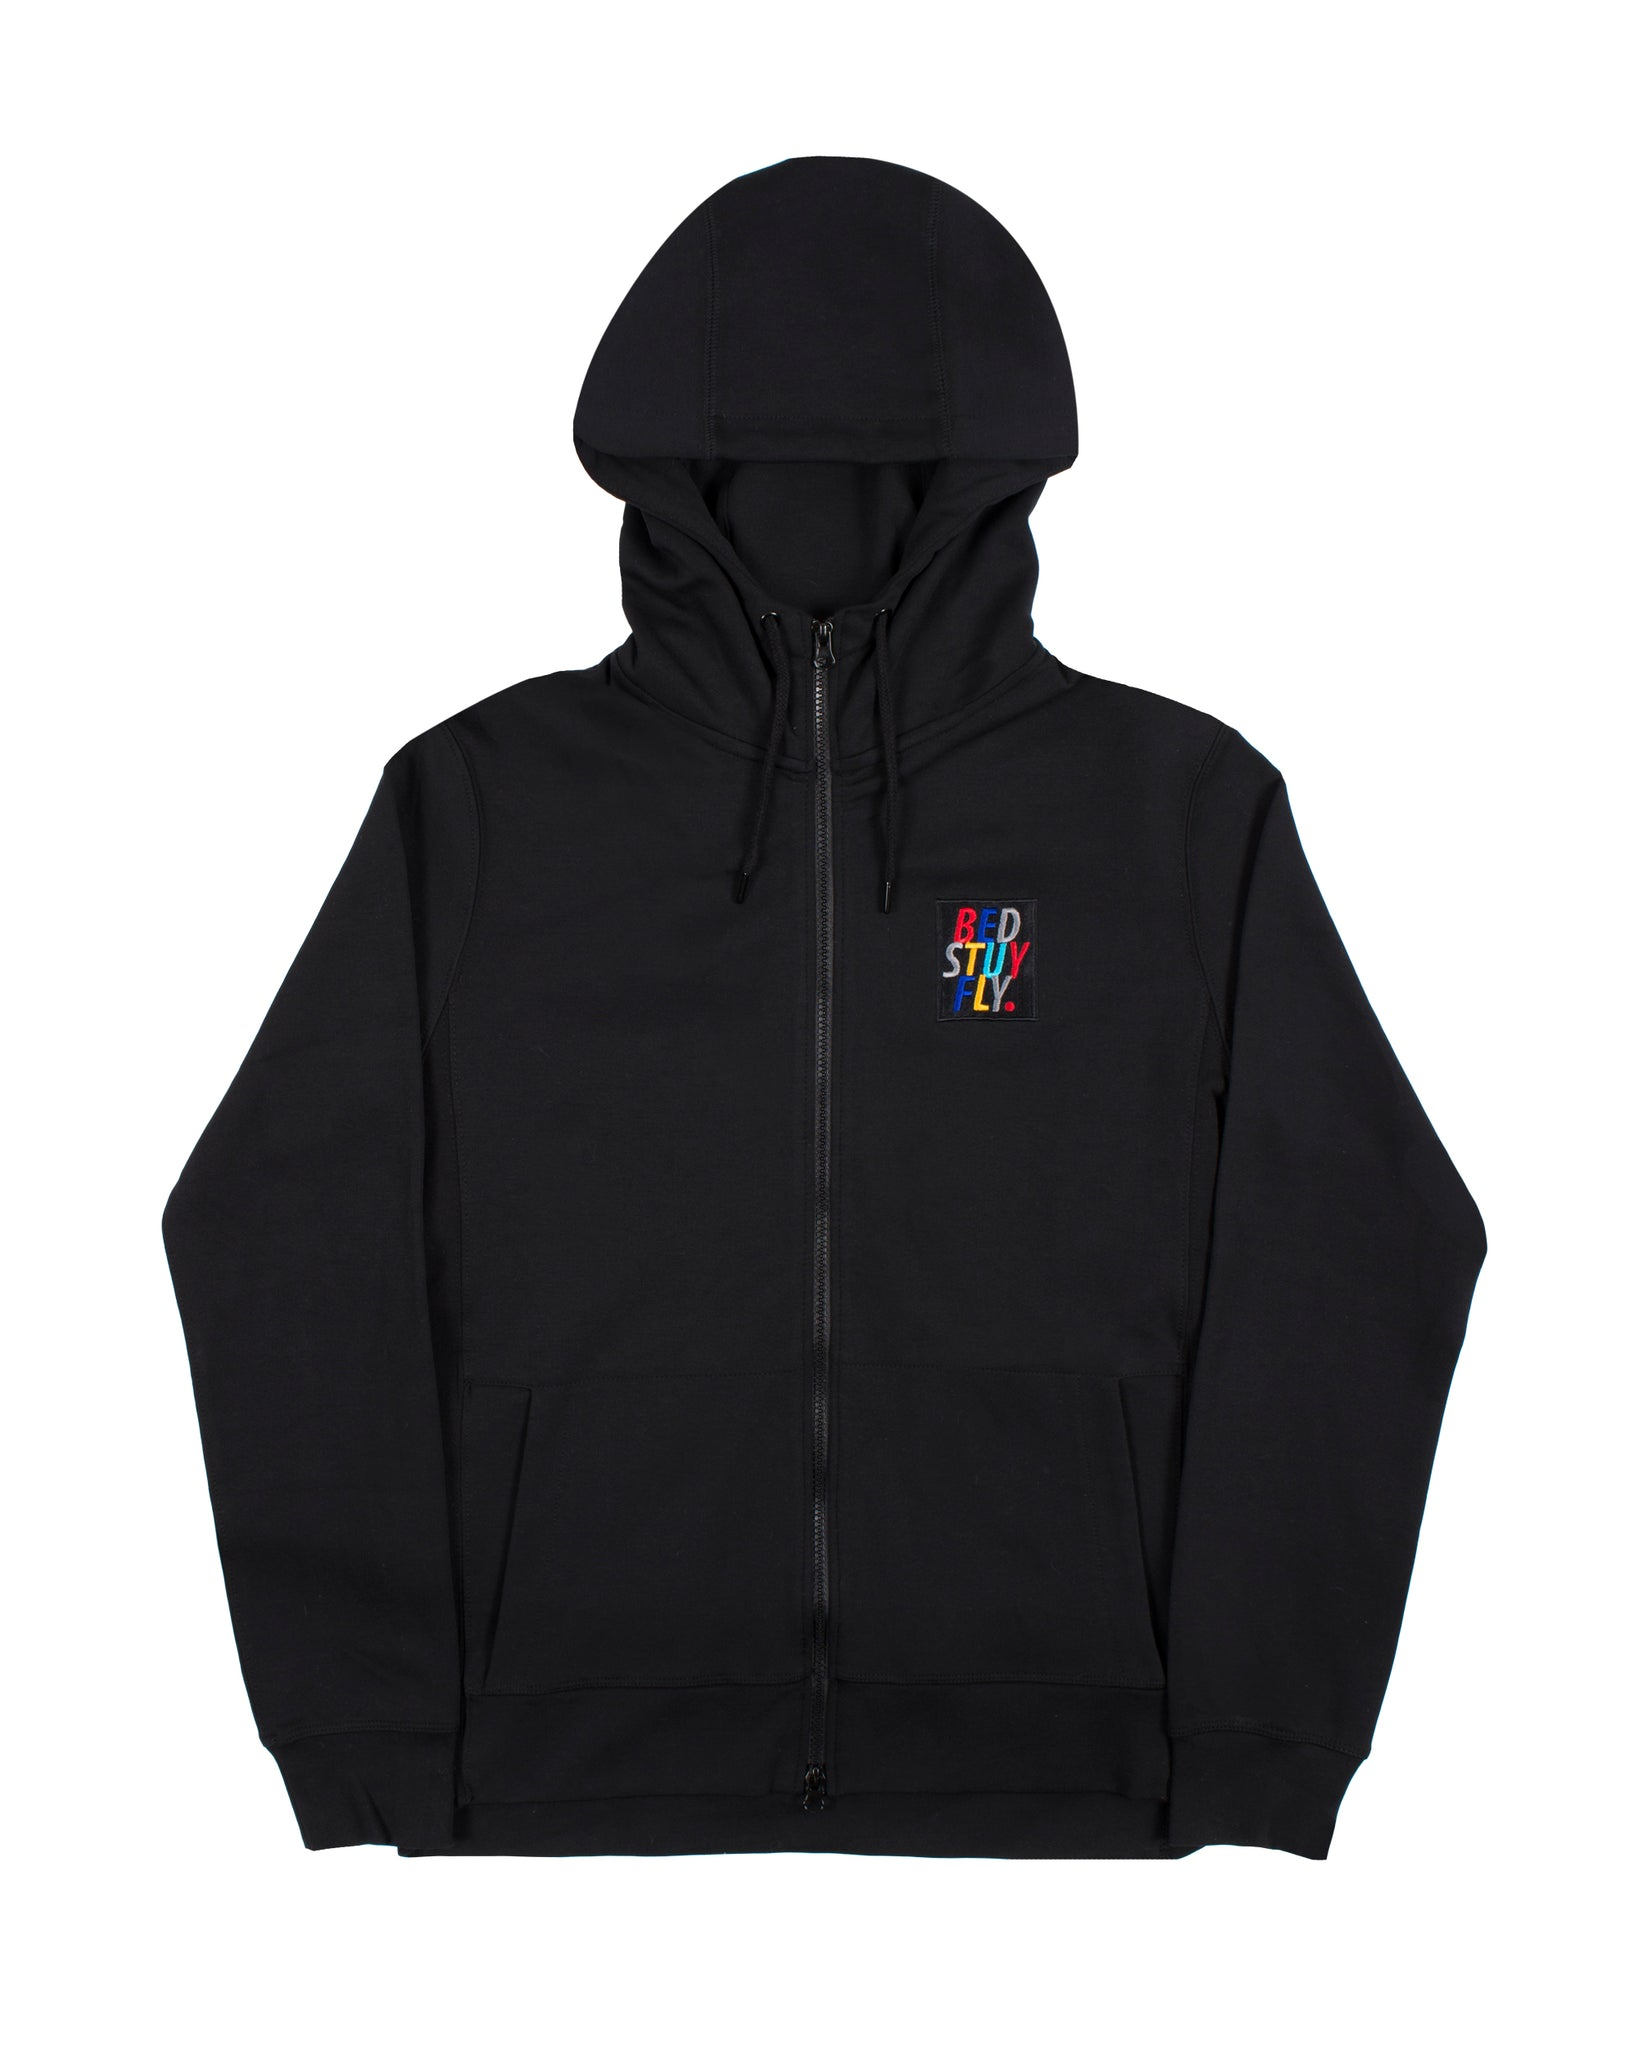 Performance Tech Fleece II Hoodies (Black)